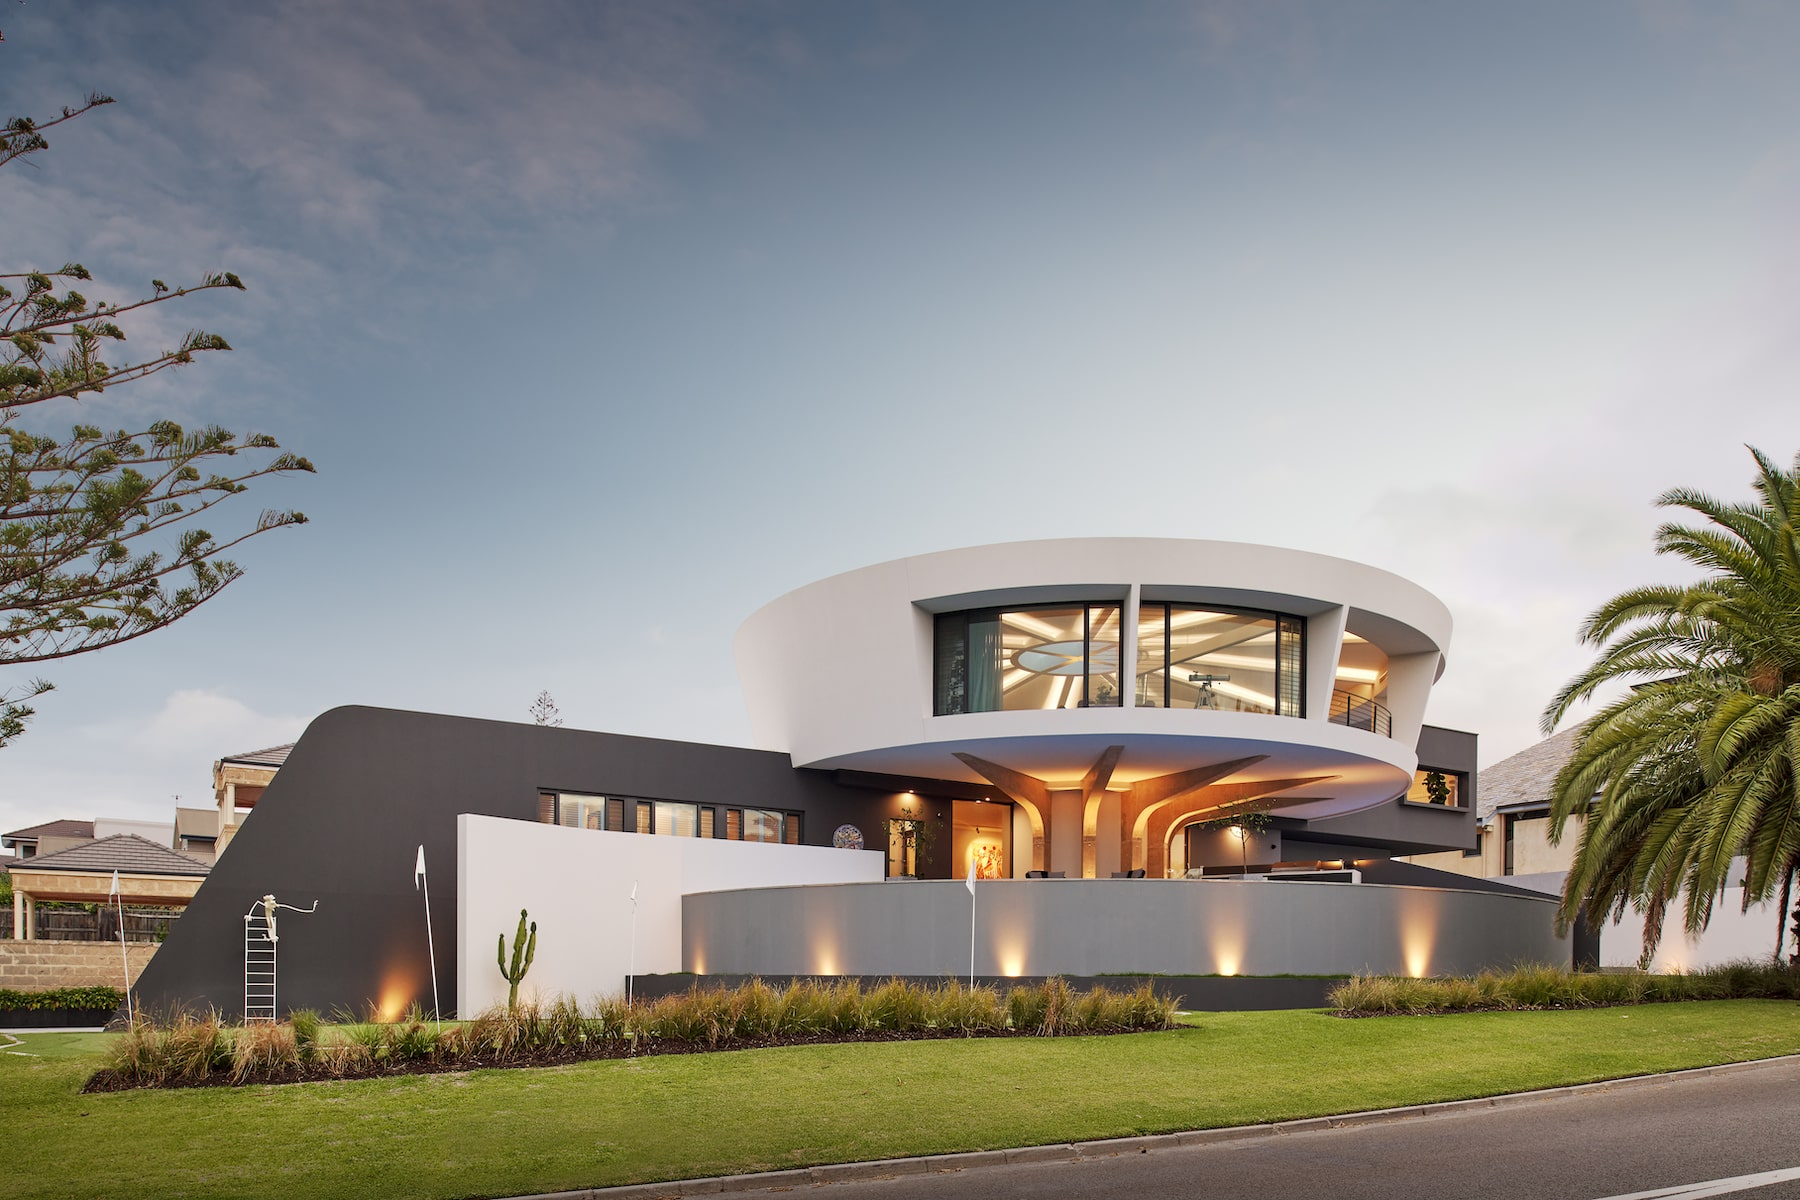 Futuristic Home featured